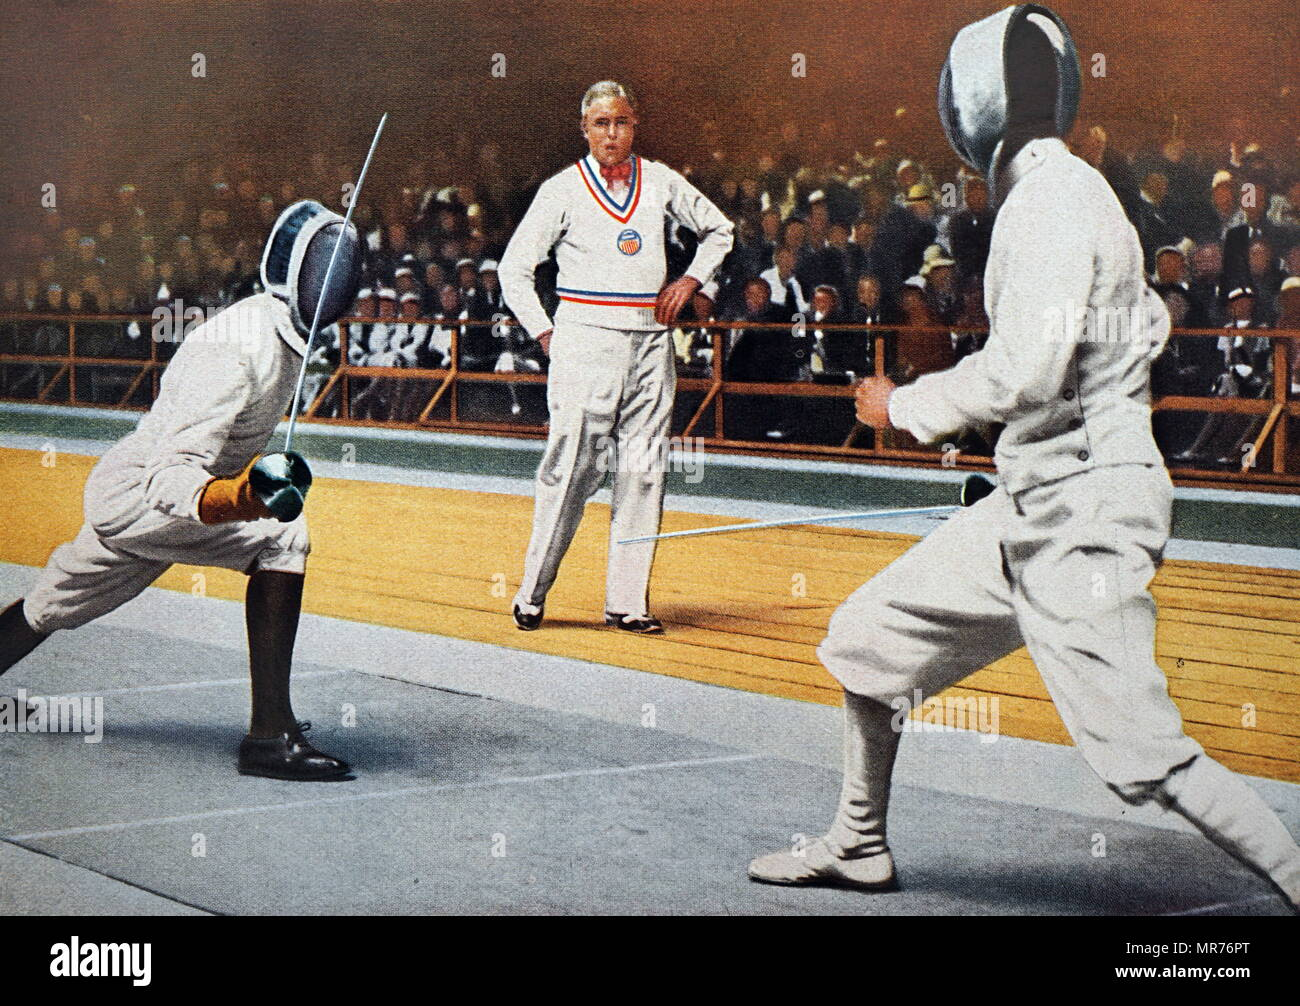 Photograph of Giulio Gaudini (1904 - 1948) and George Piller (1899 - 1960) at the 1932 Olympic games. - Stock Image